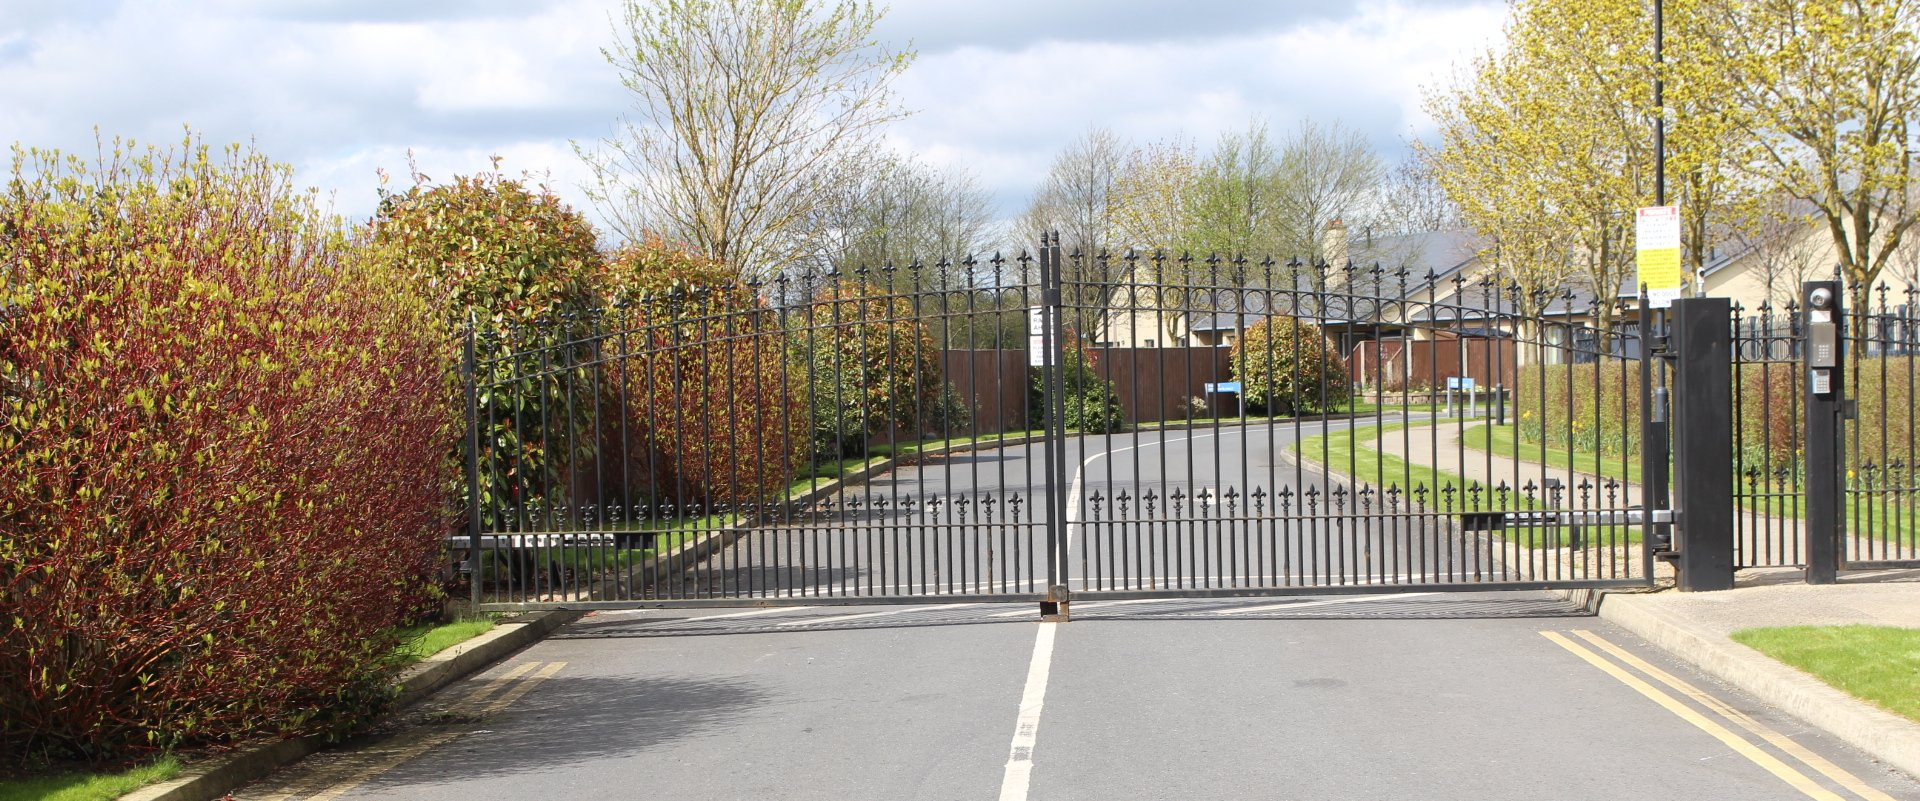 Private Entrance Gates